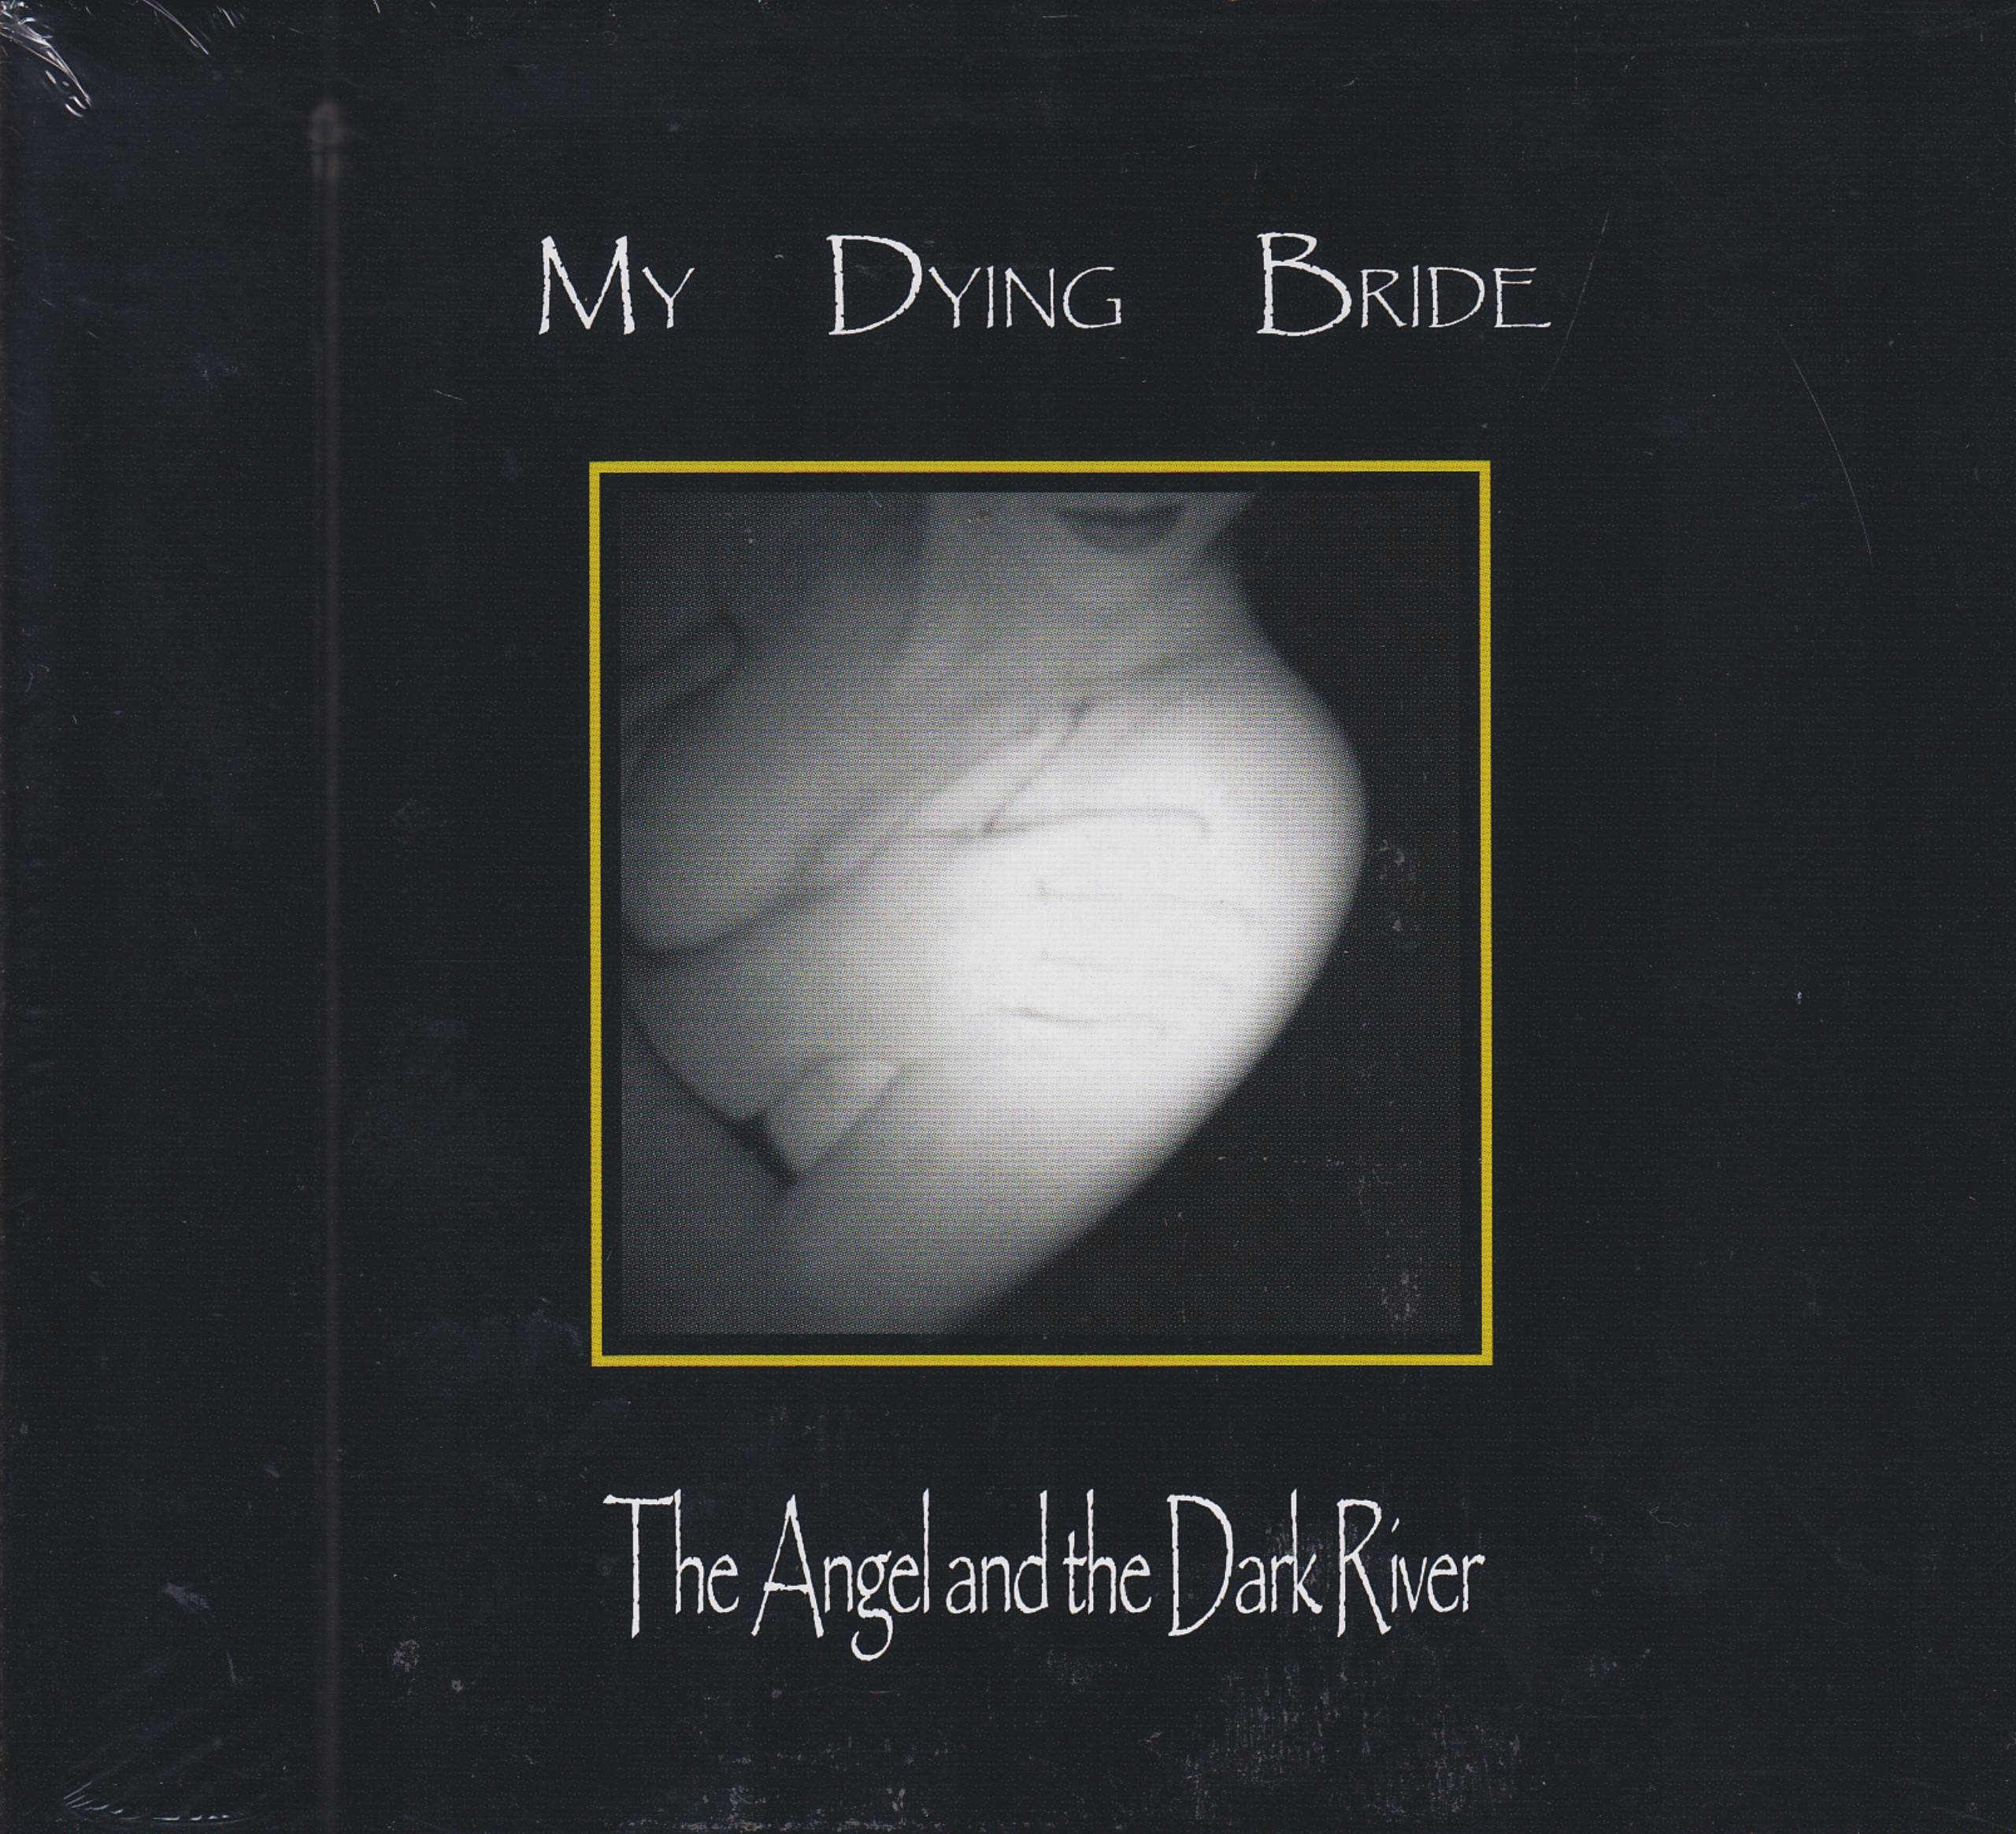 My Dying Bride – The Angel and the Dark River (1995)